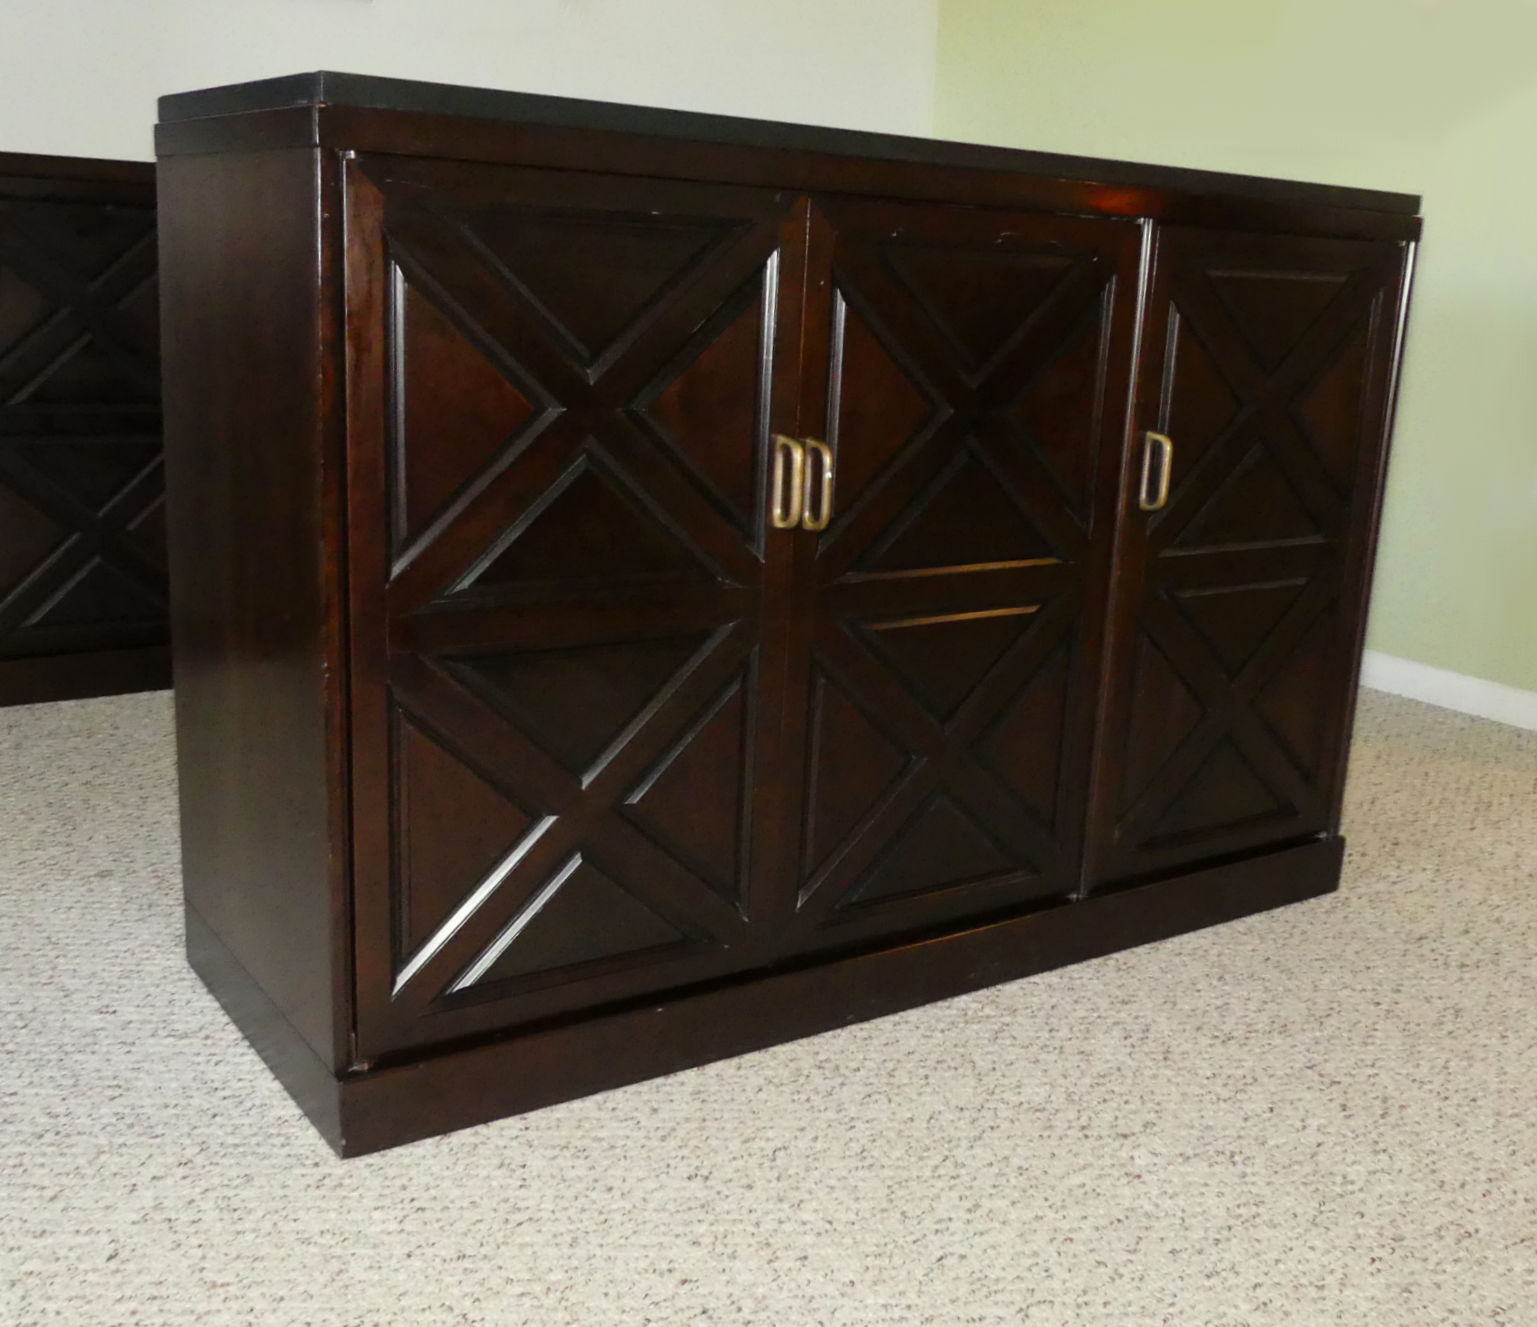 Slate Top Mahogany Cabinet Attributed to Johnson Furniture for Directional Industries